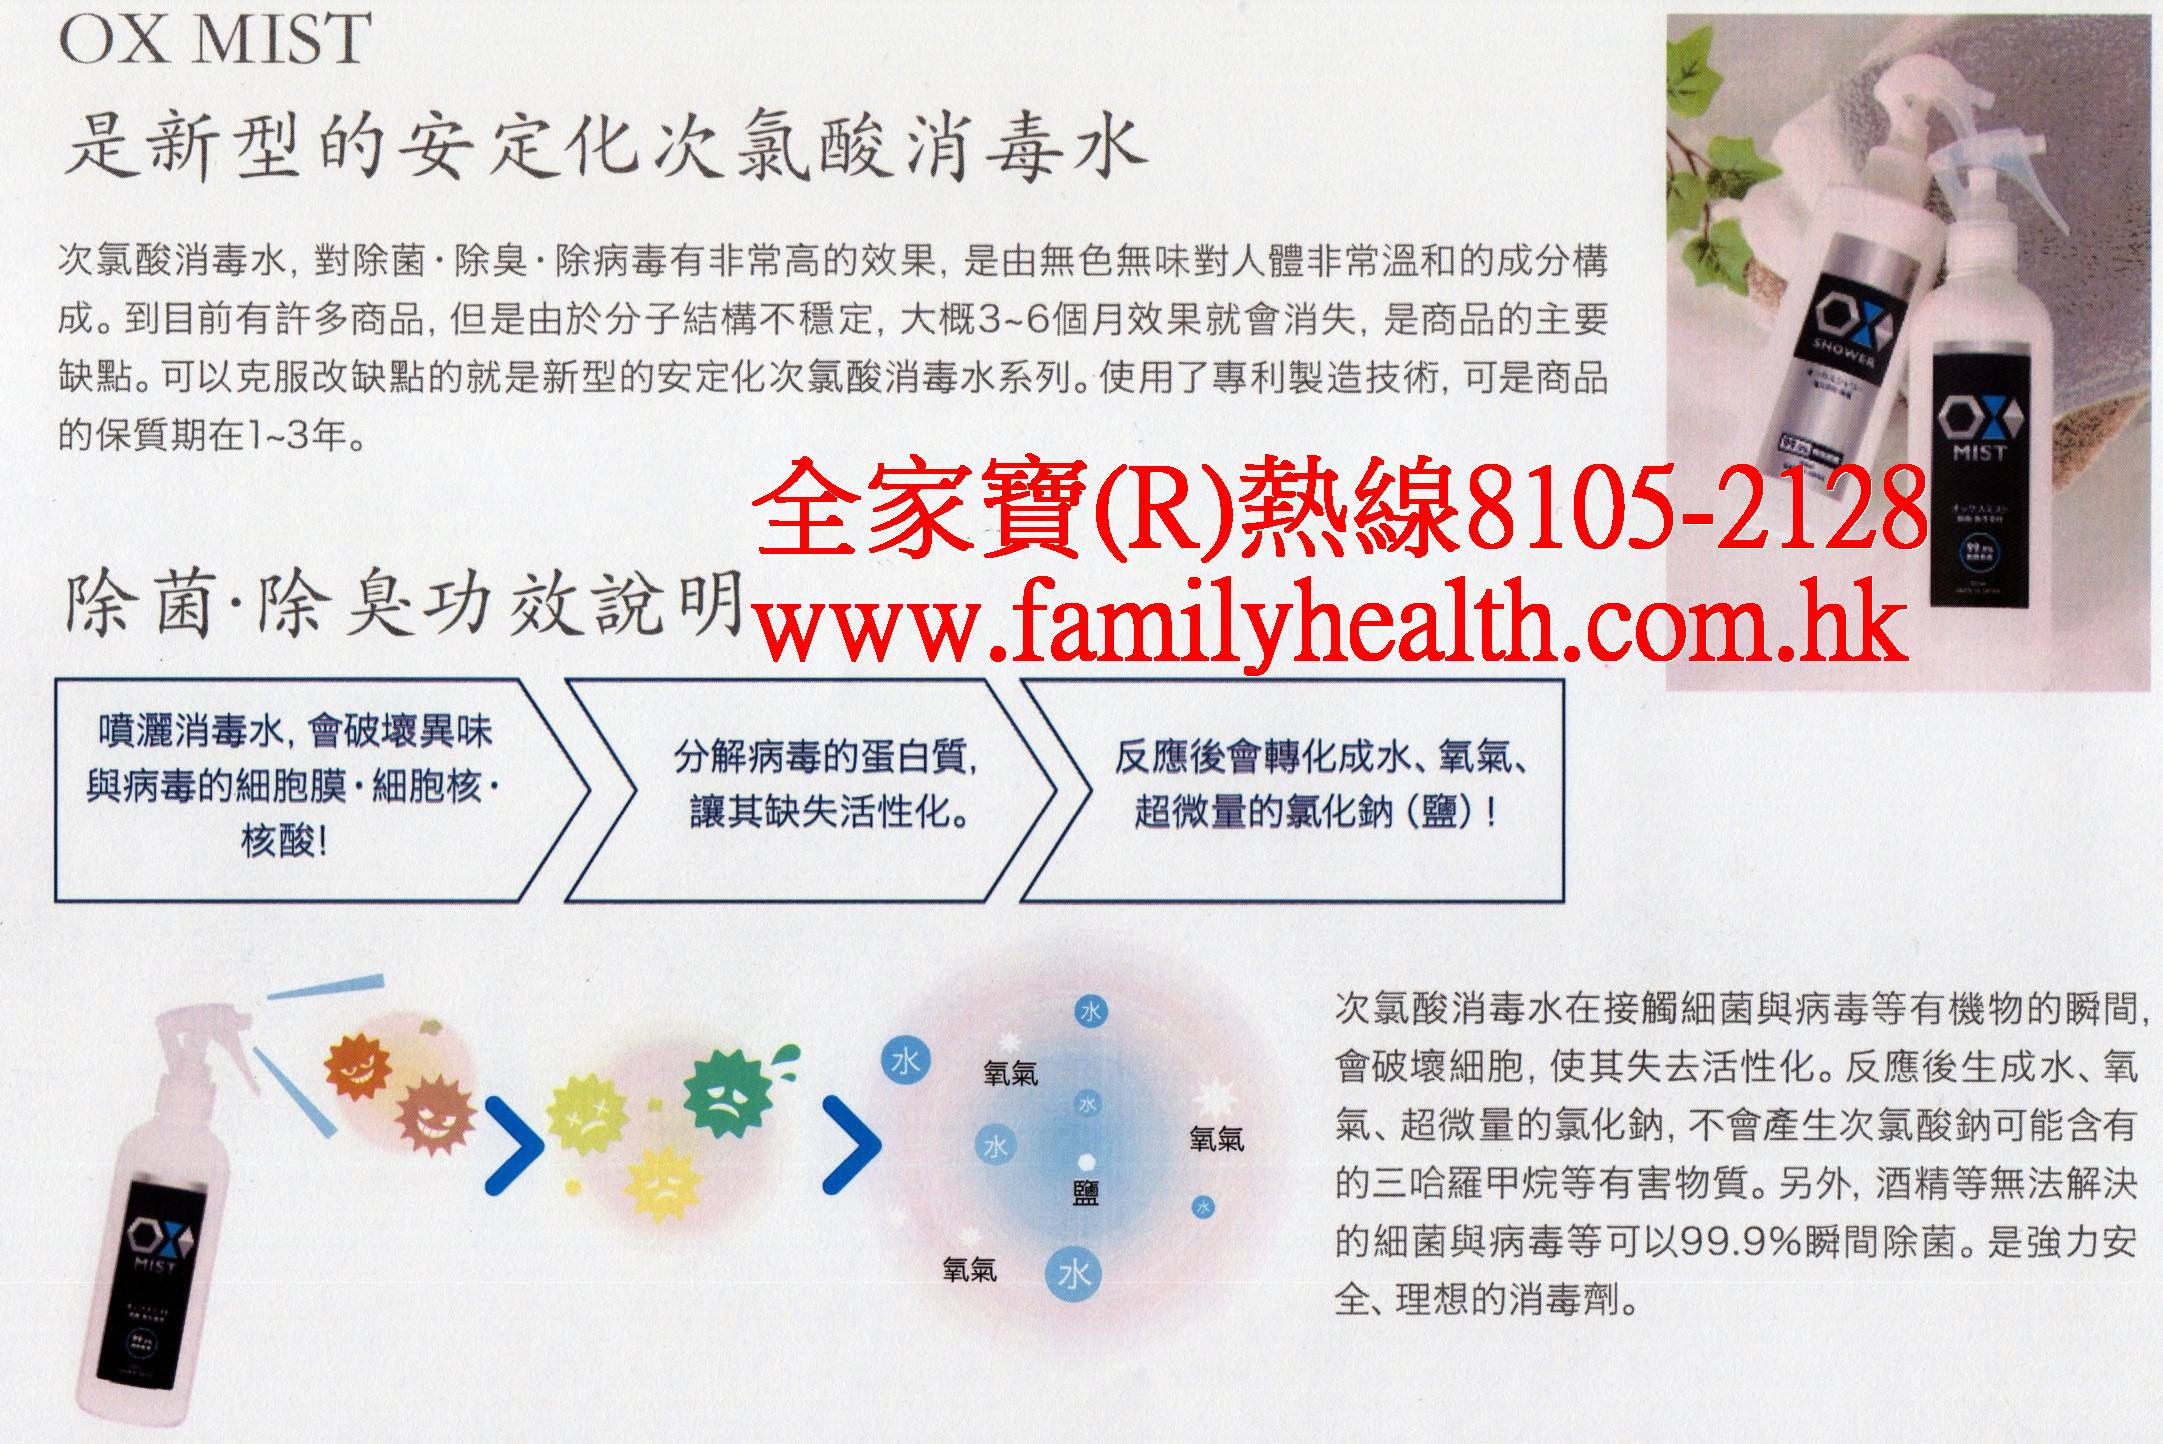 http://www.familyhealth.com.hk/files/full/1083_0.jpg